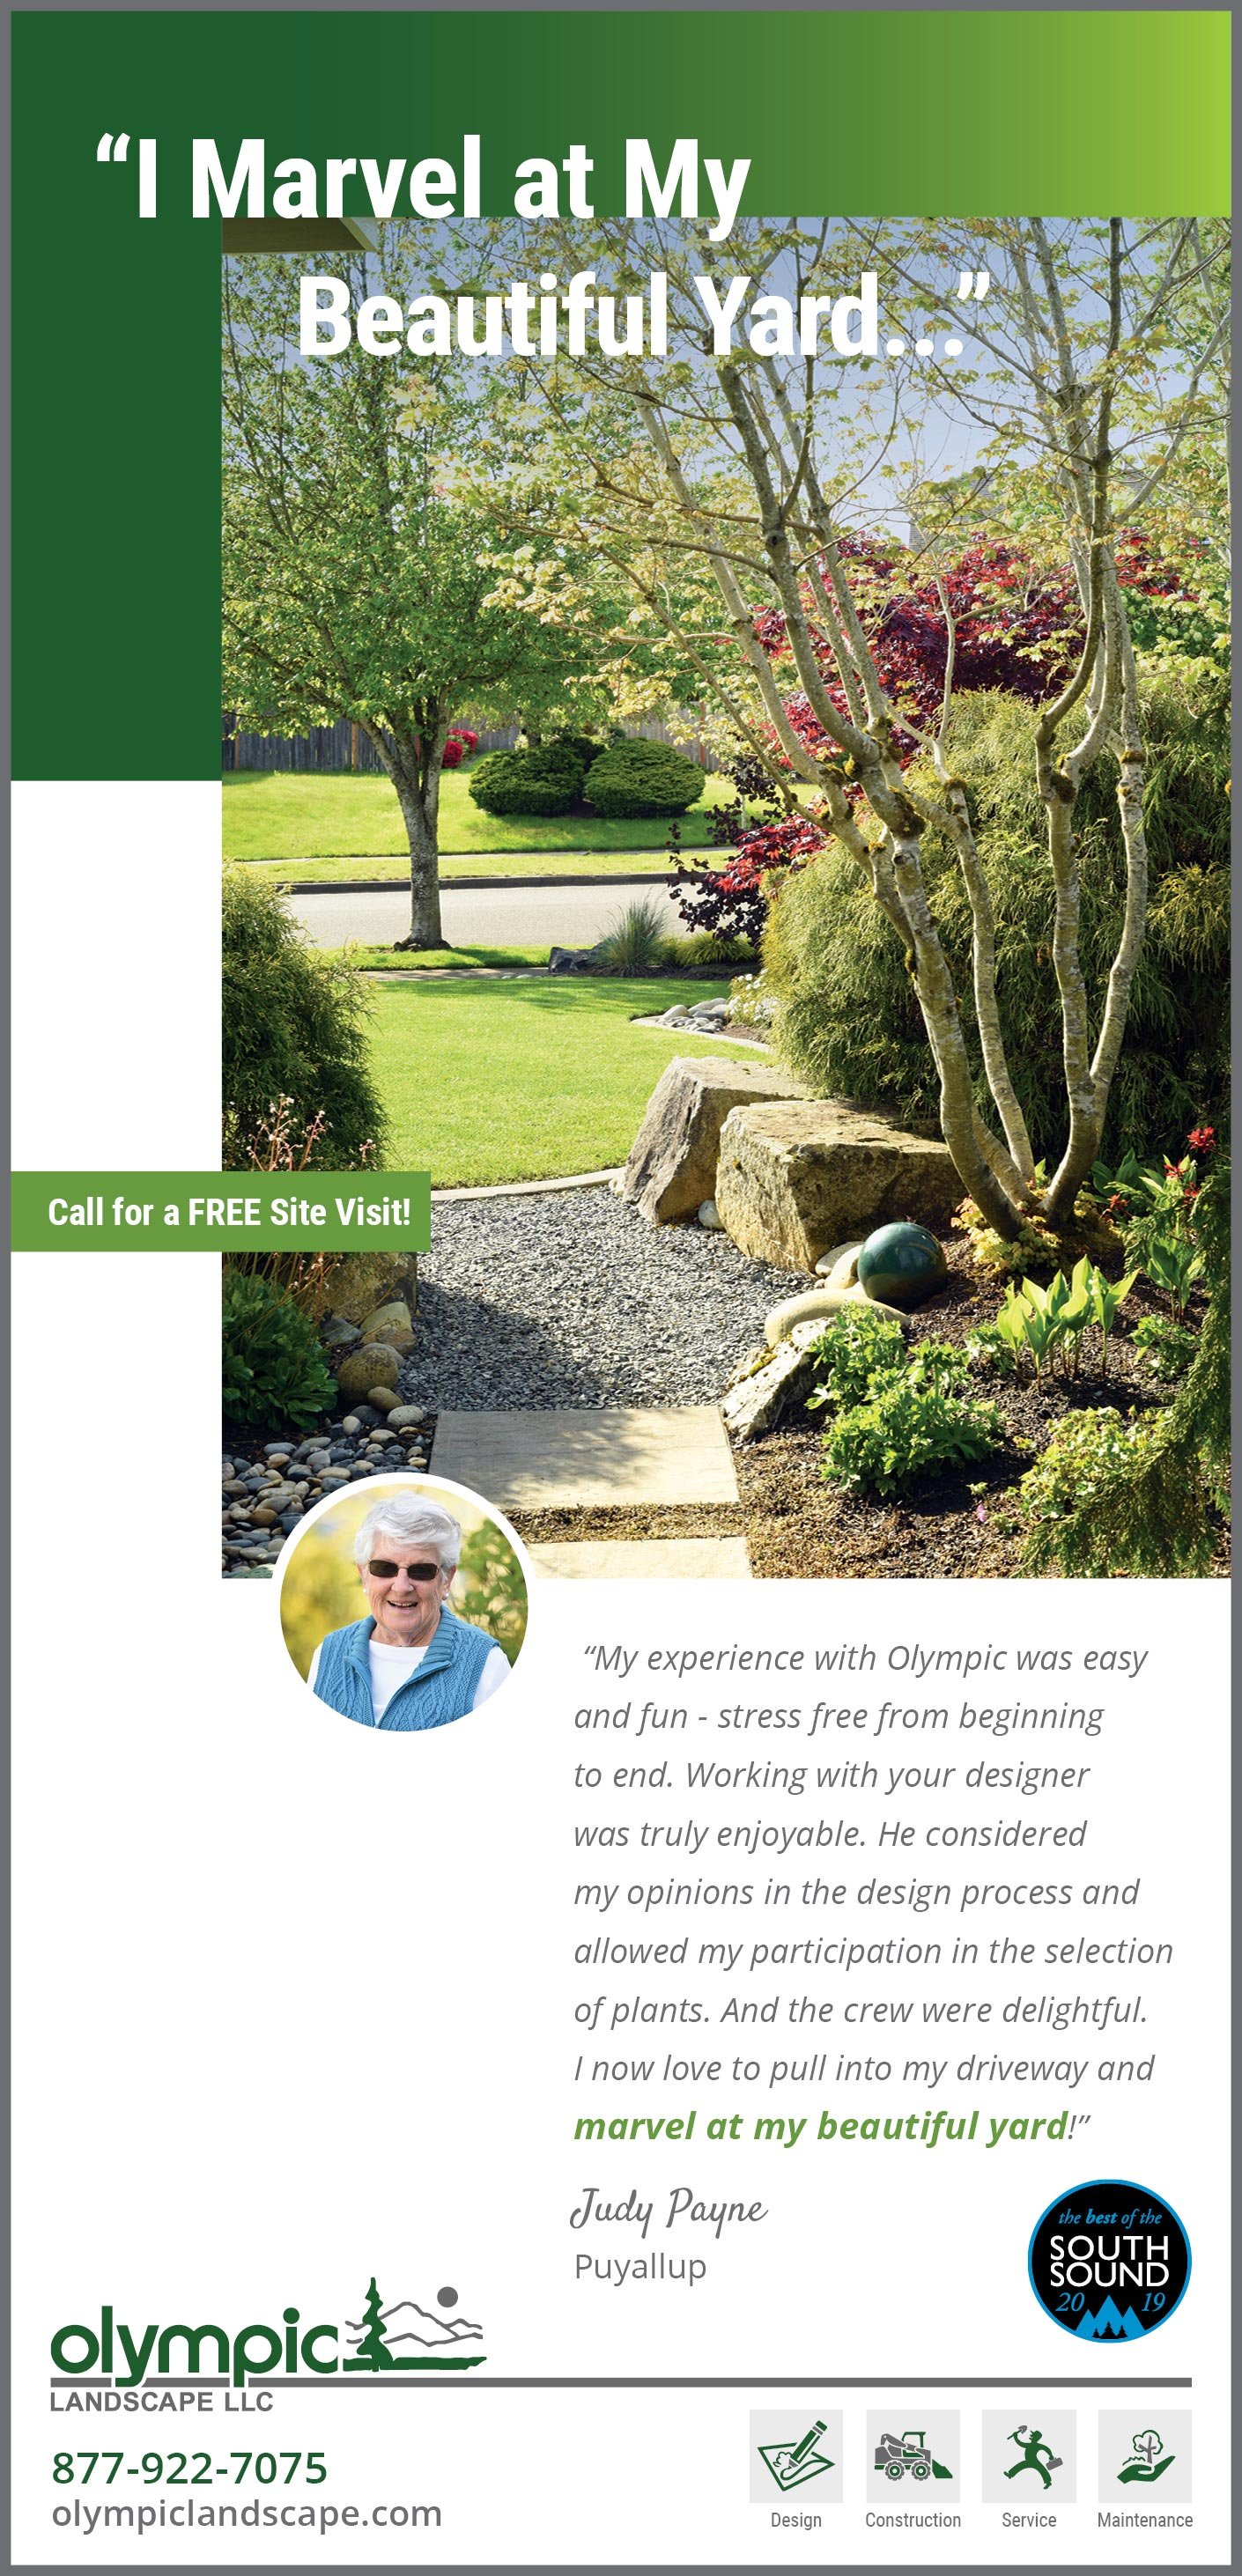 Landscape design testimonial by Judy Payne from Puyallup, WA as featured in South Sound Magazine.